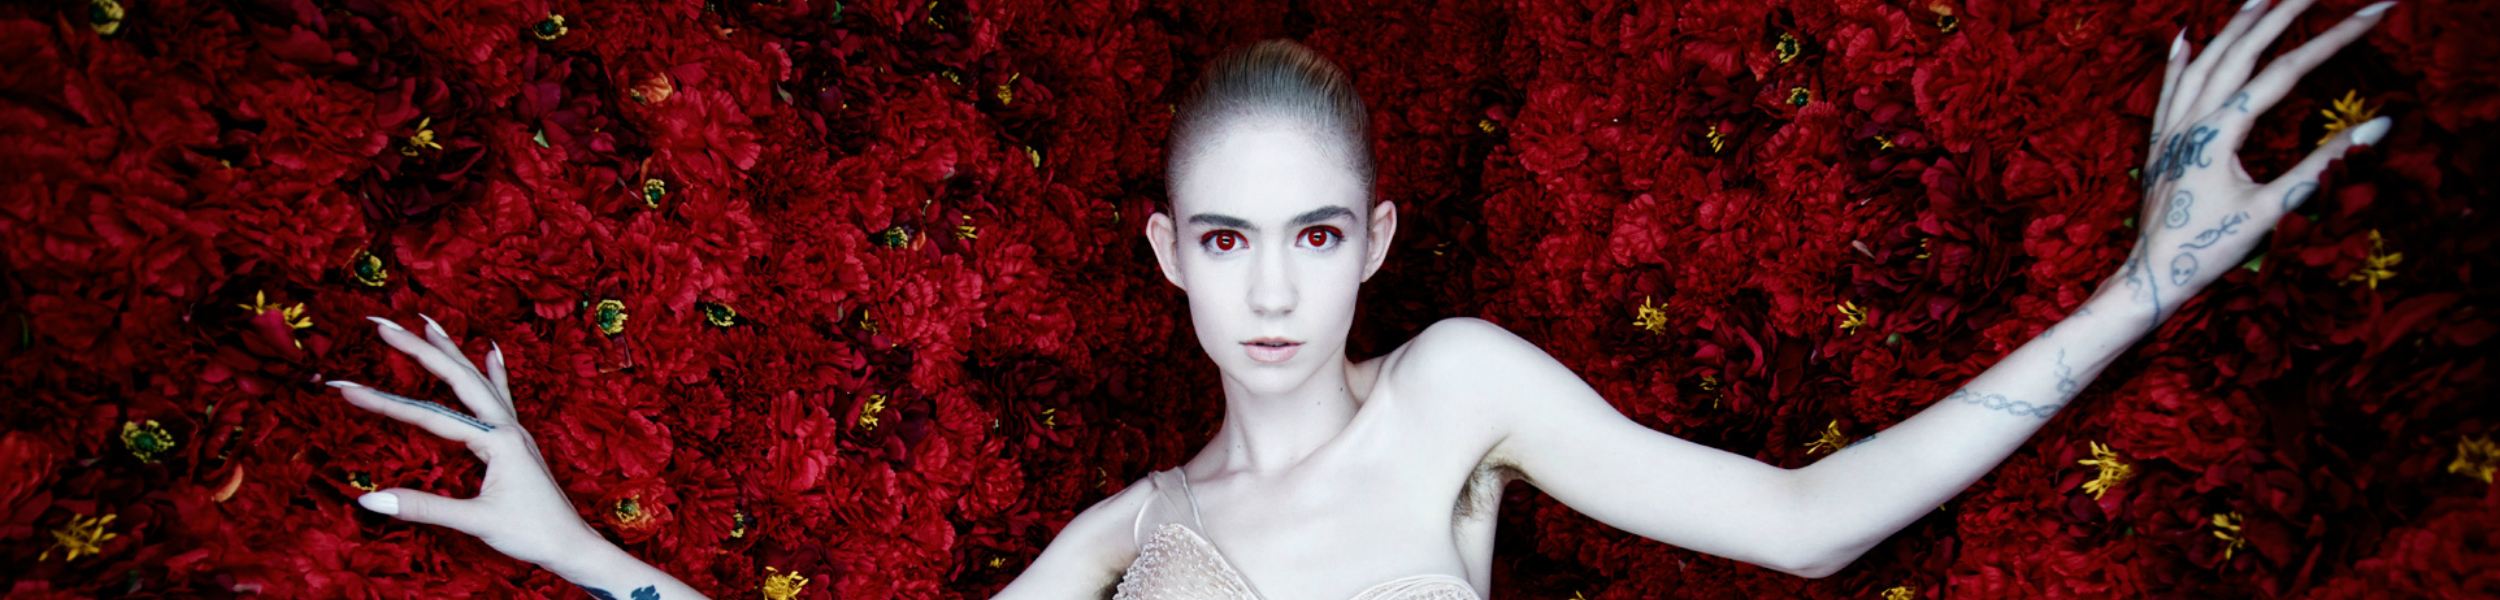 Grimes - Grimes Announces New North American Shows